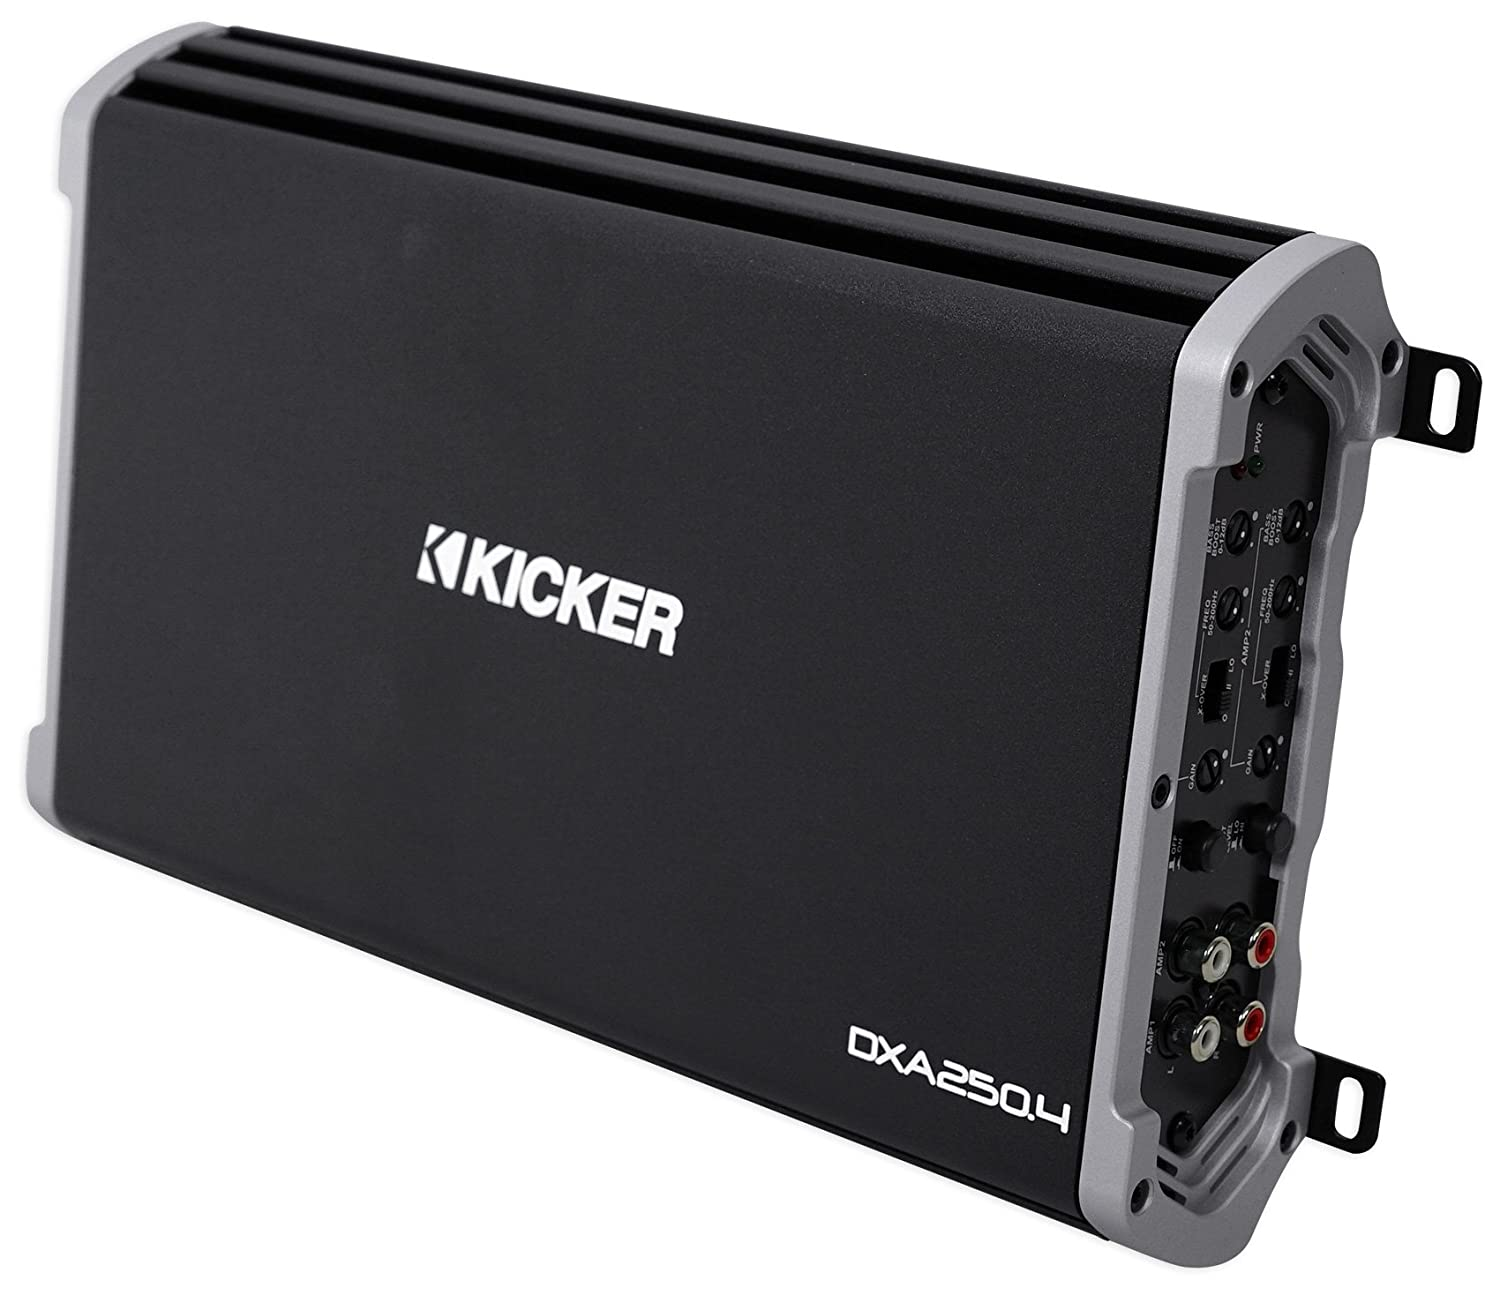 Amazon.com: Kicker 43DXA2504 D-Series 4-Ch. 60Wx4 Car Amplifier Amp DXA250.4 4+ Earbuds: Car Electronics